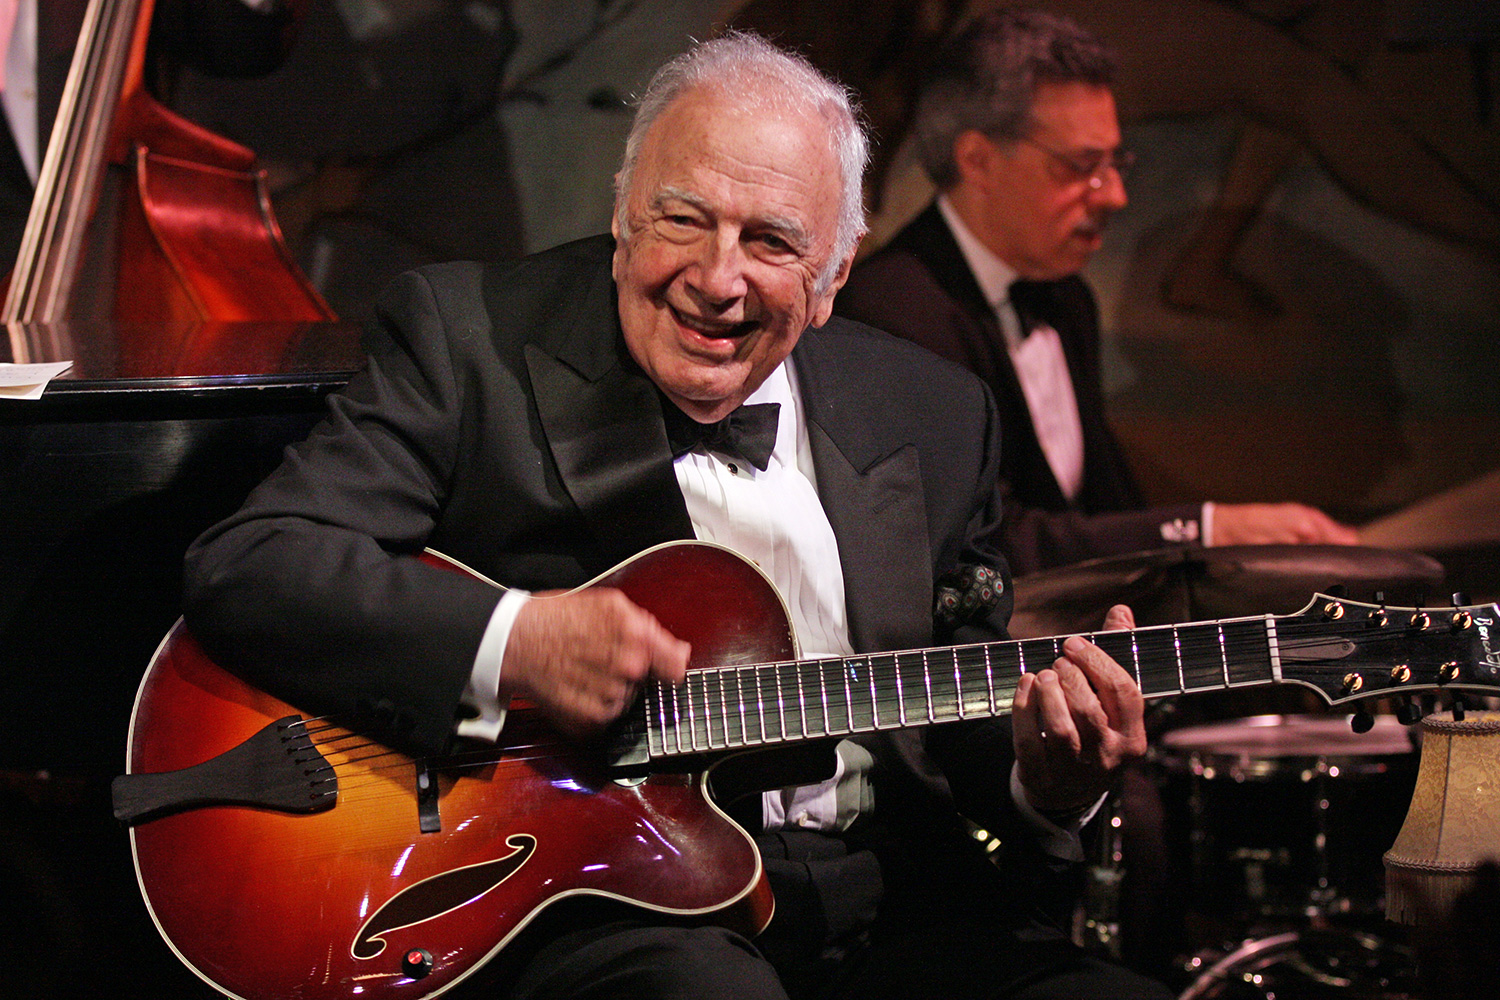 John Pizzarelli Quartet with a special guest Bucky Pizzarelli at Cafe Carlyle on Wednesday night, April 10, 2013